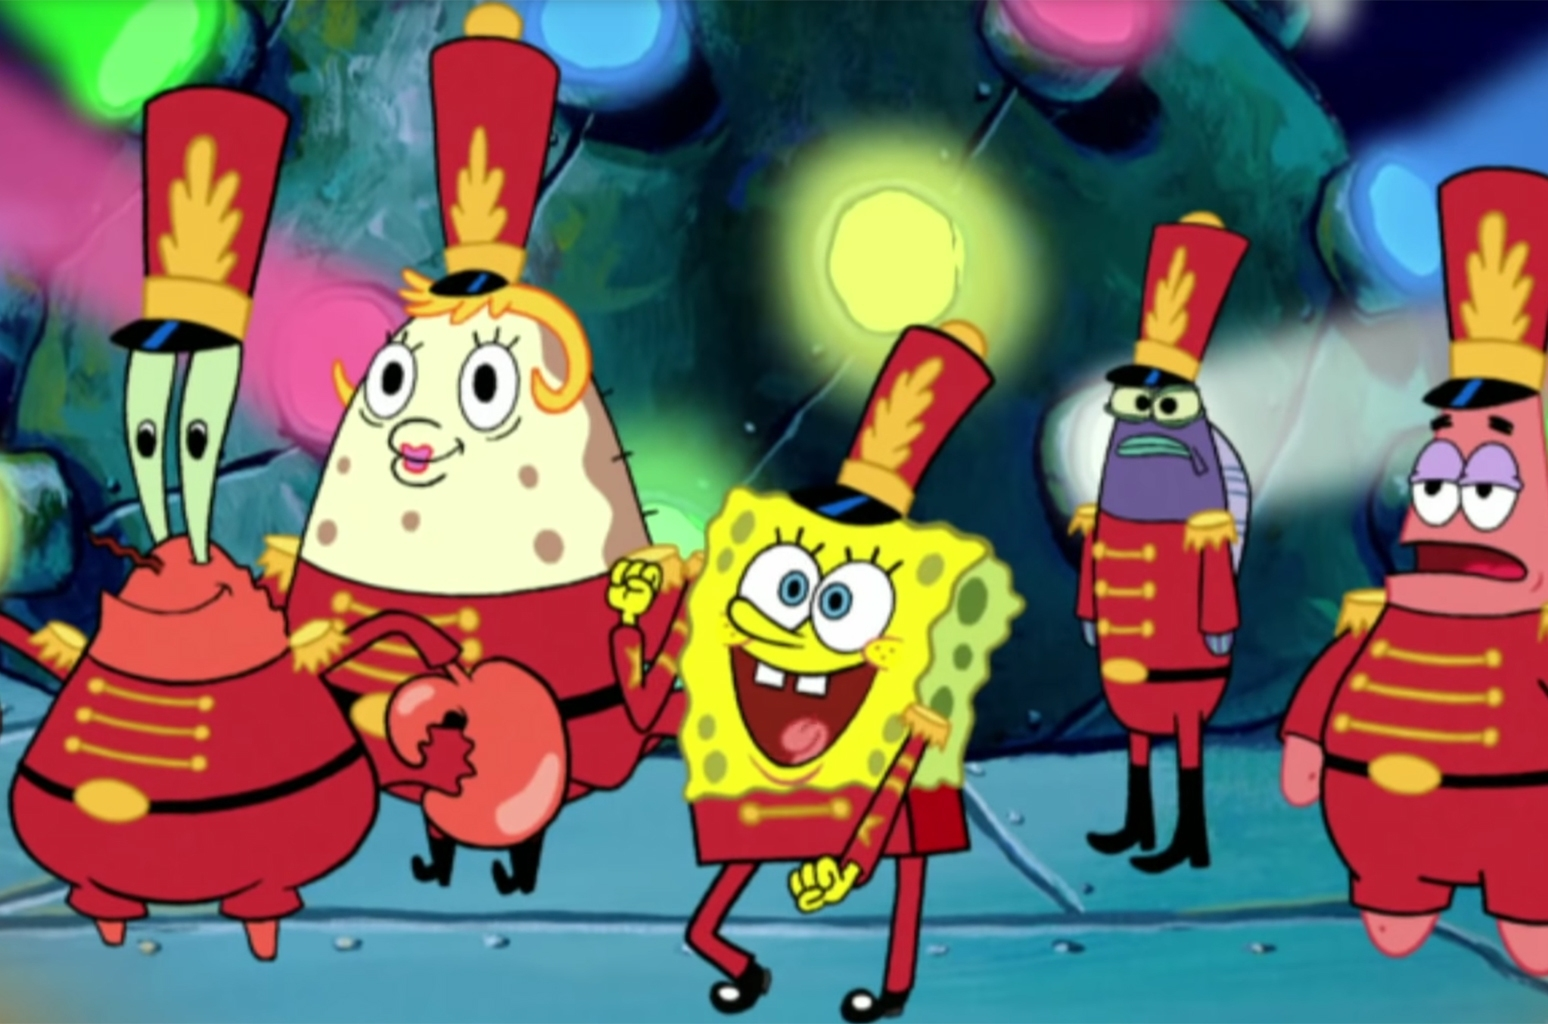 Spongebob Squarepants' 'sweet Victory' Jumps 566% In Streams with regard to Spongebob Squarepants Sweet Victory